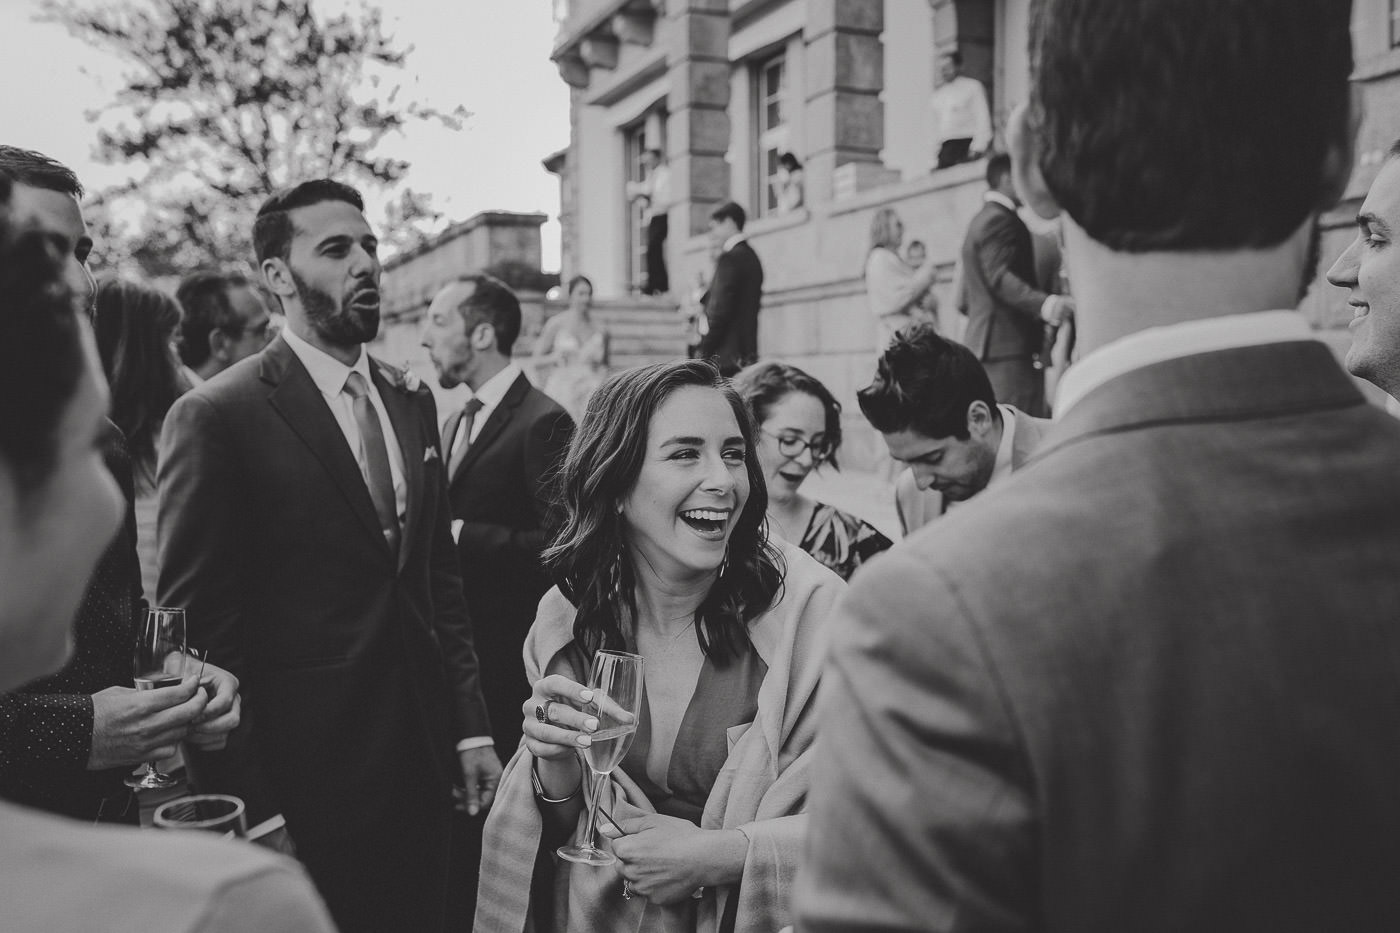 bride-groom_pousada-viana-do-castelo_monte-de-santa-luzia_viana-do-castelo_documentary-wedding-photography_destination-wedding